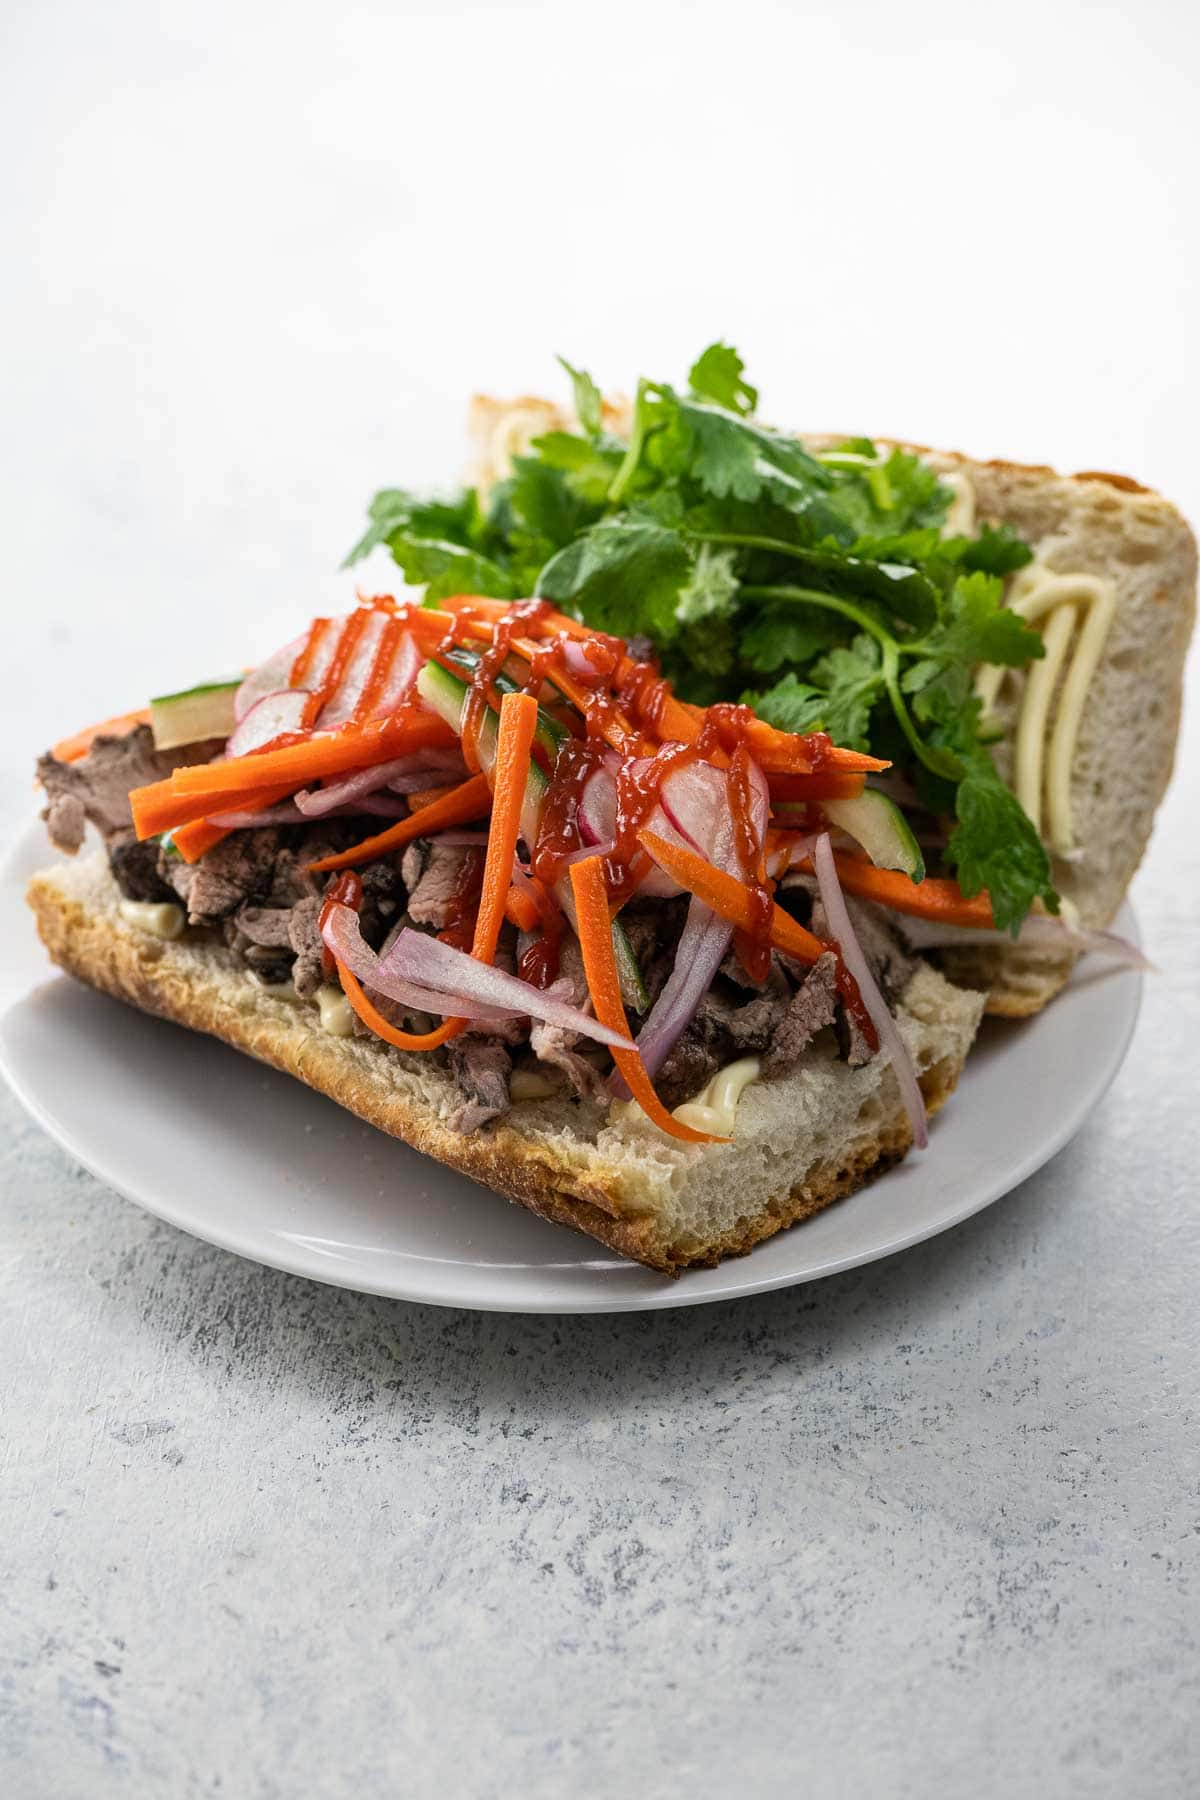 pork banh mi sandwich with pickled vegetables and cilantro on a white plate